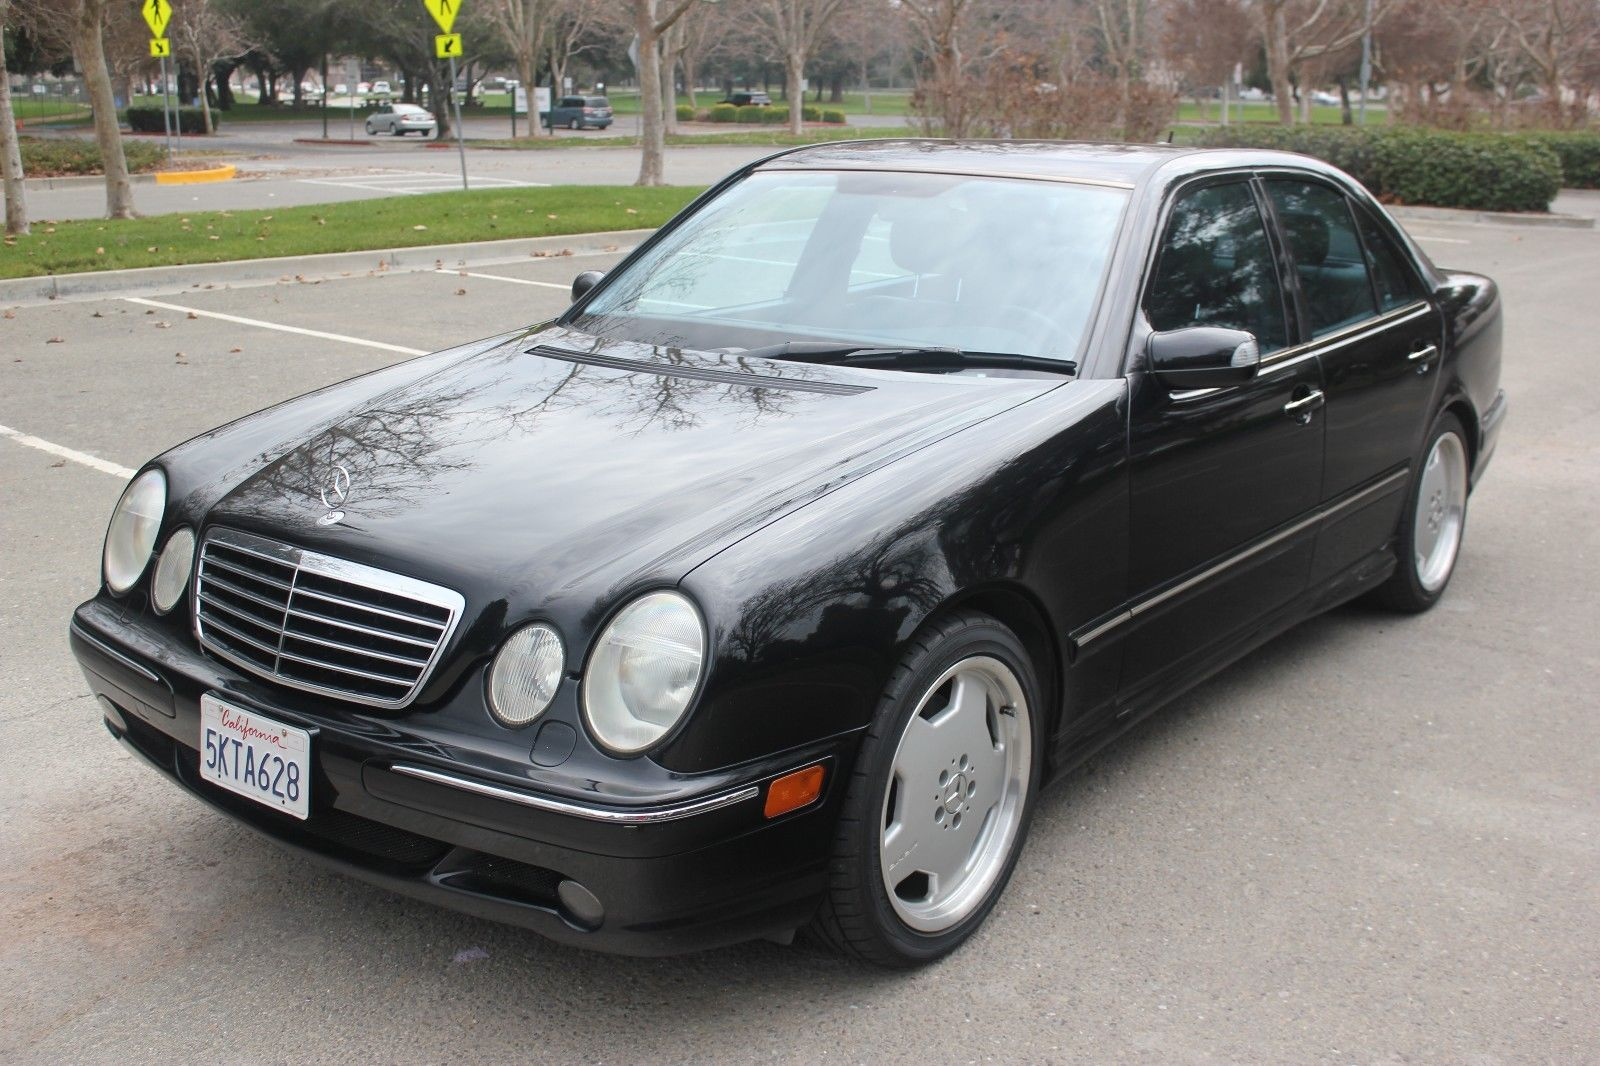 products e mercedes amg with miles for a benz class great sale product awesomeamazinggreat